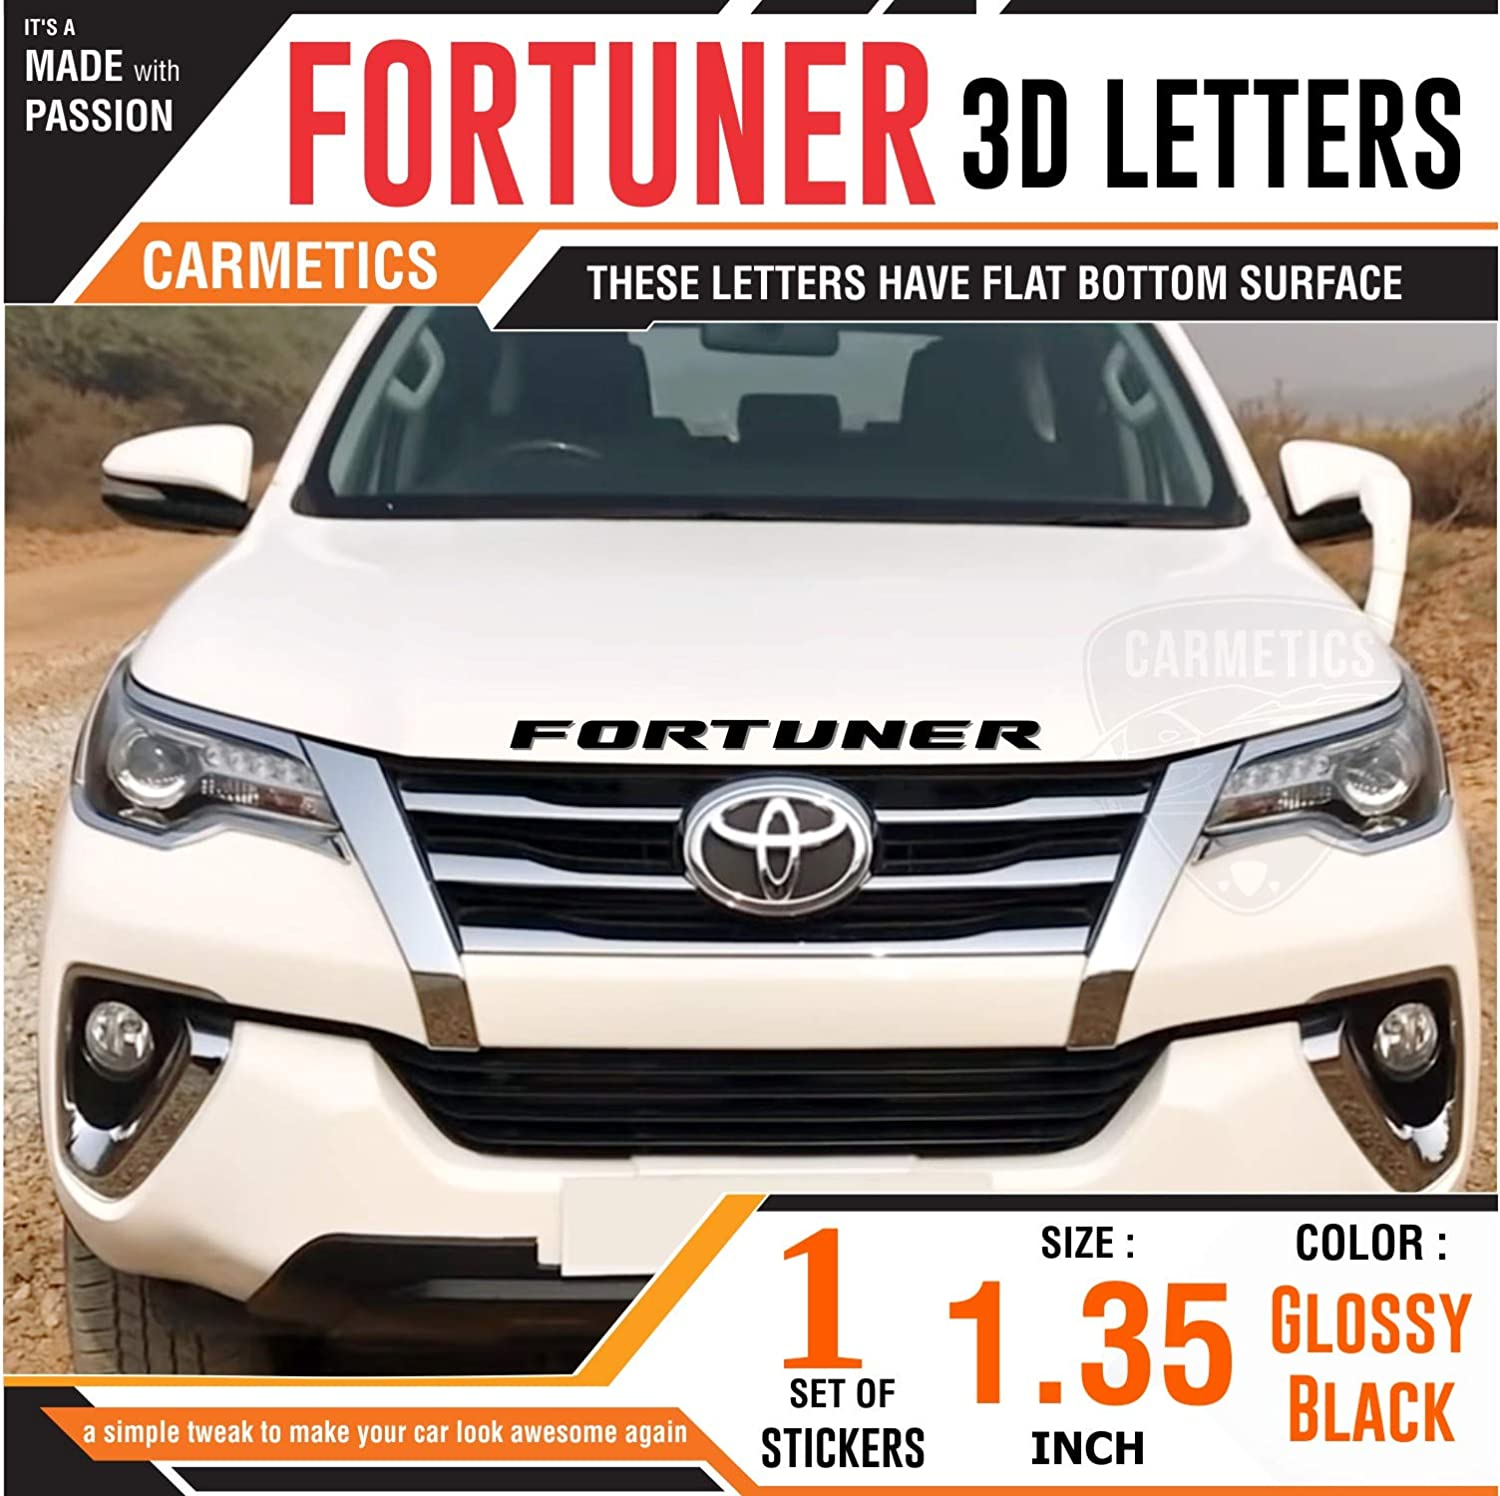 Carmetics fortuner 3d letters for toyota fortuner glossy black 3d letters 3d logo 3d sticker fortuner accessories amazon in car motorbike